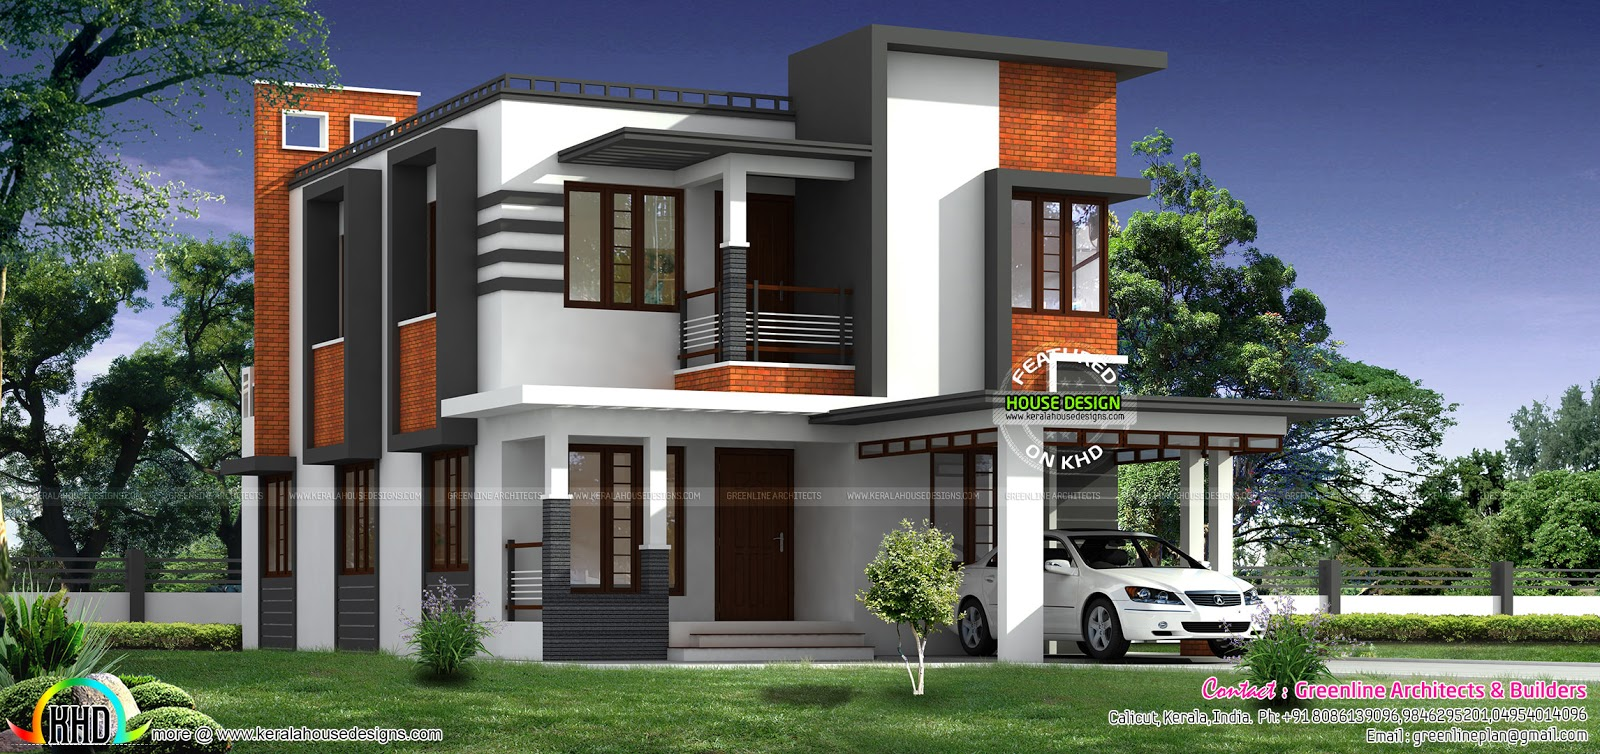 1800 sq ft nice modern house kerala home design and for New design house image